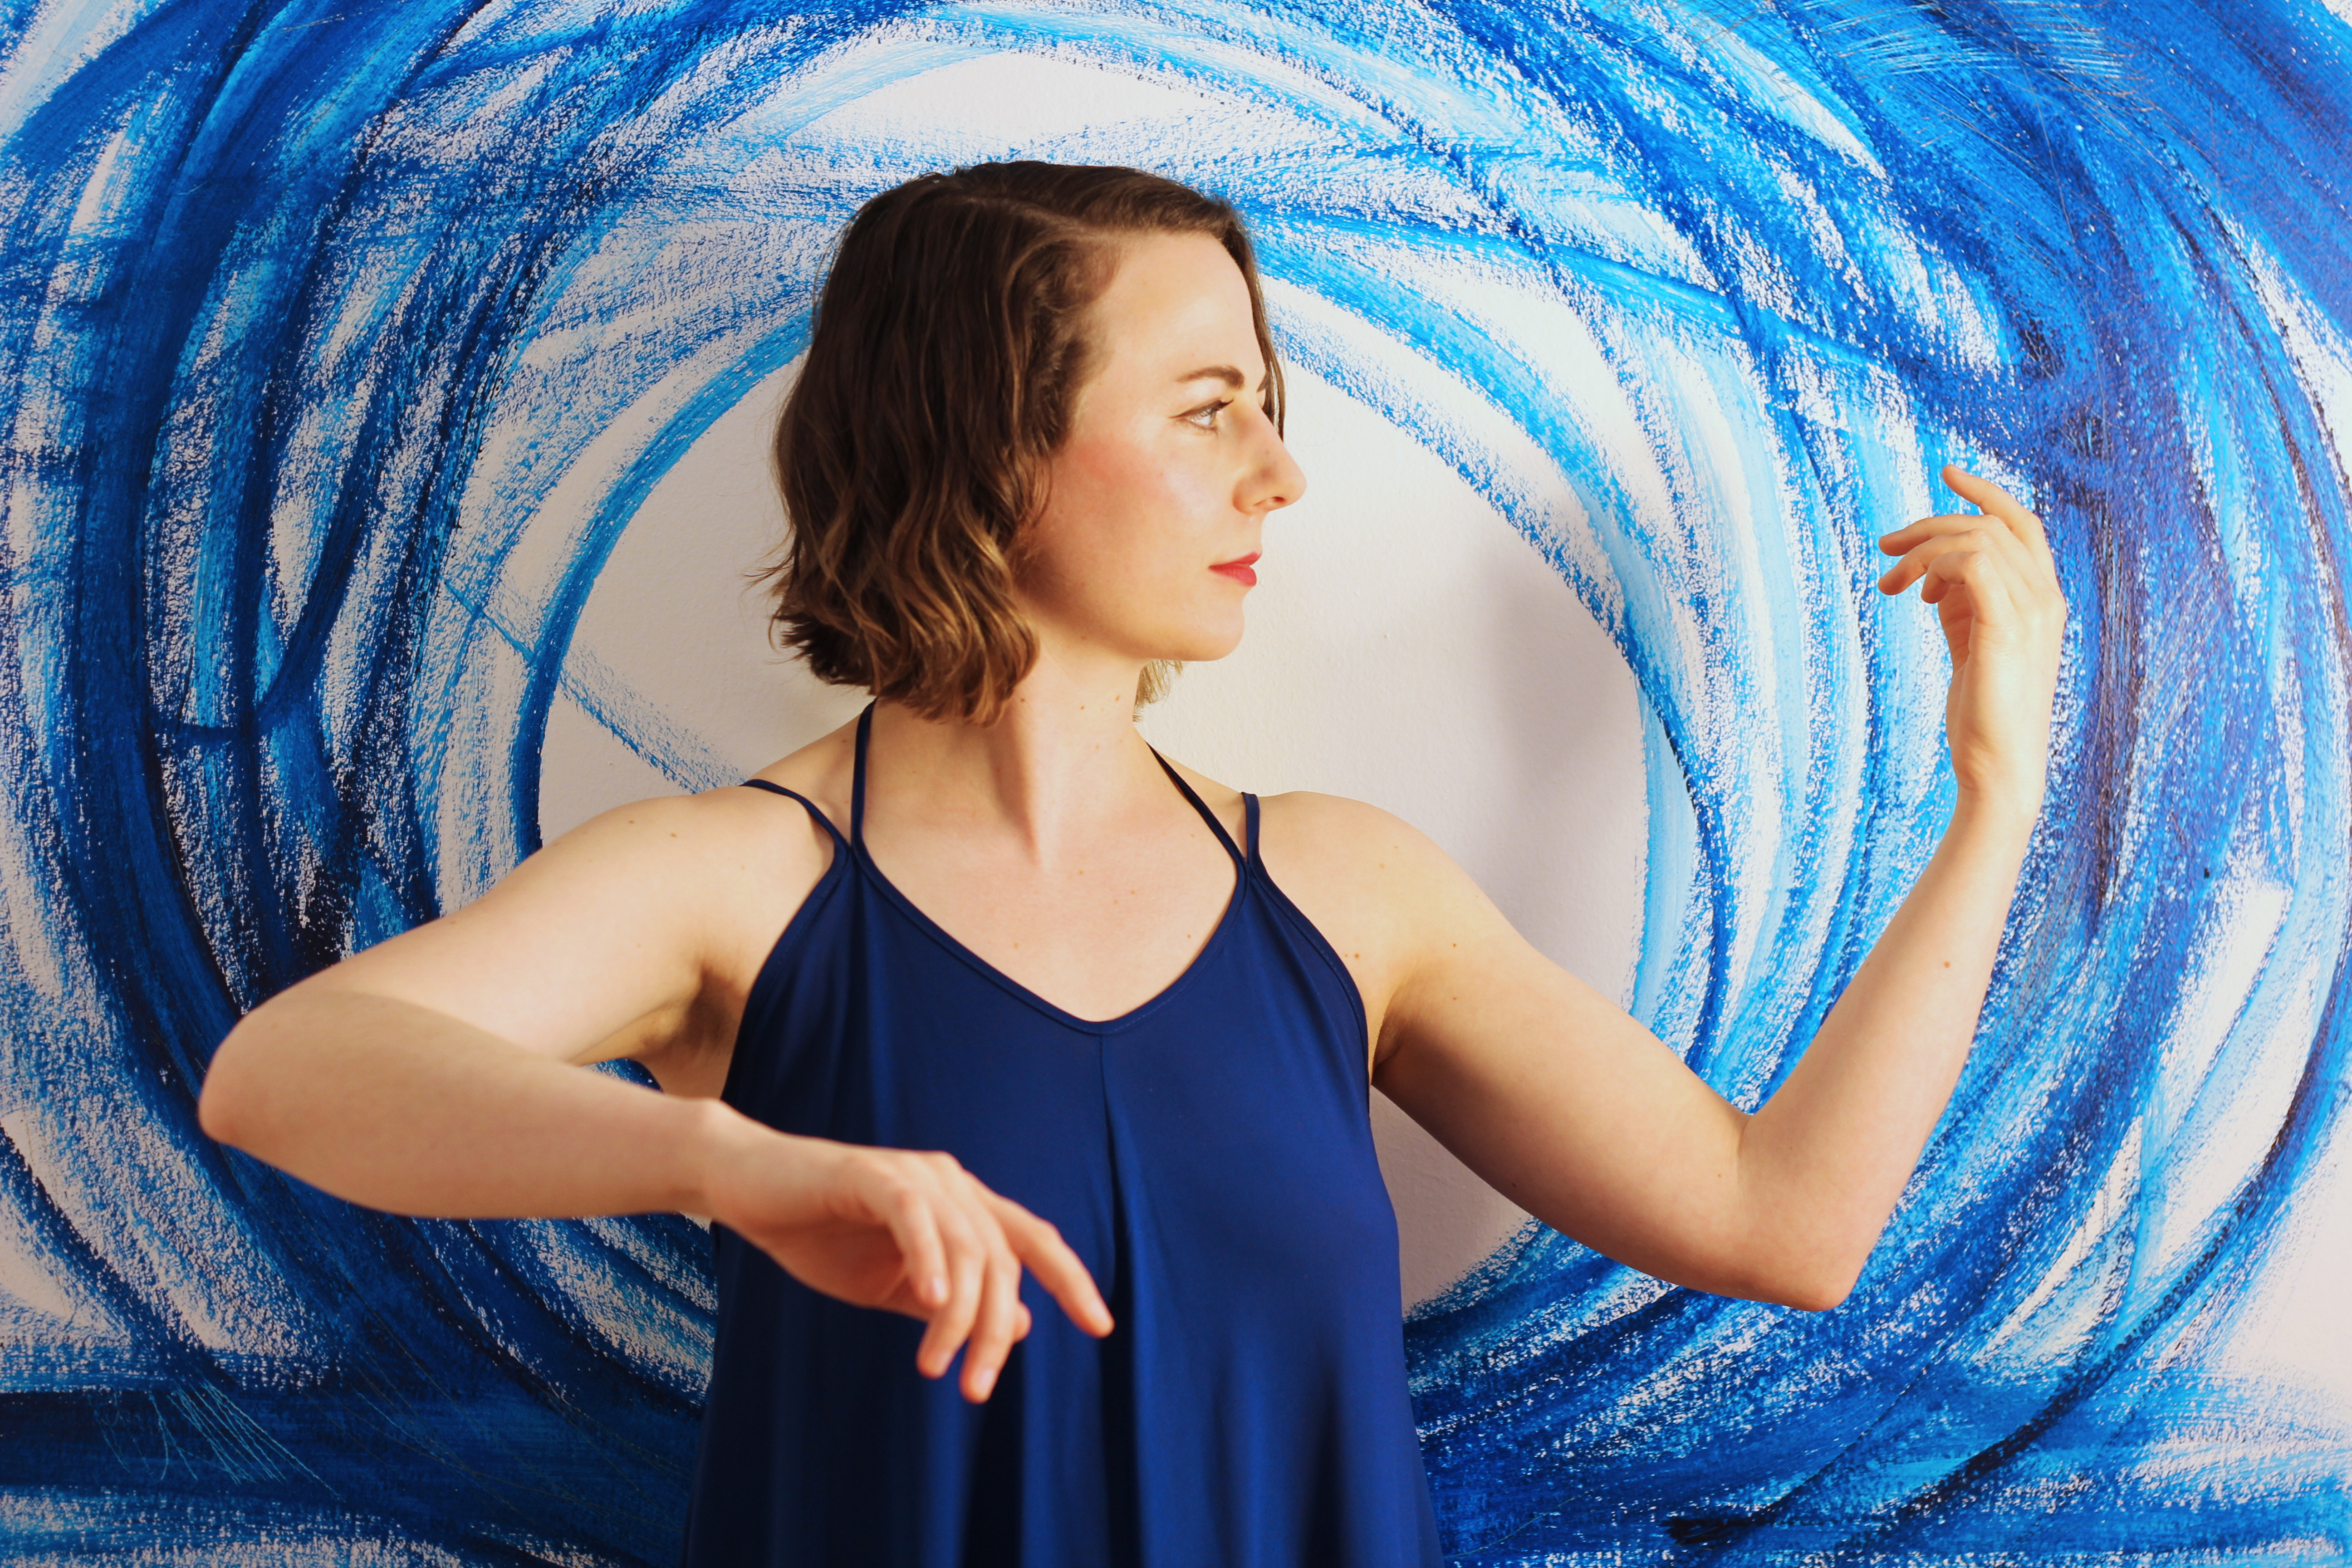 Andie Springer Has Been Living In New York City As A Performer And Teacher  For The Past 11 Years She Grew Up In Alaska Studying The Violin Under The  Suzuki